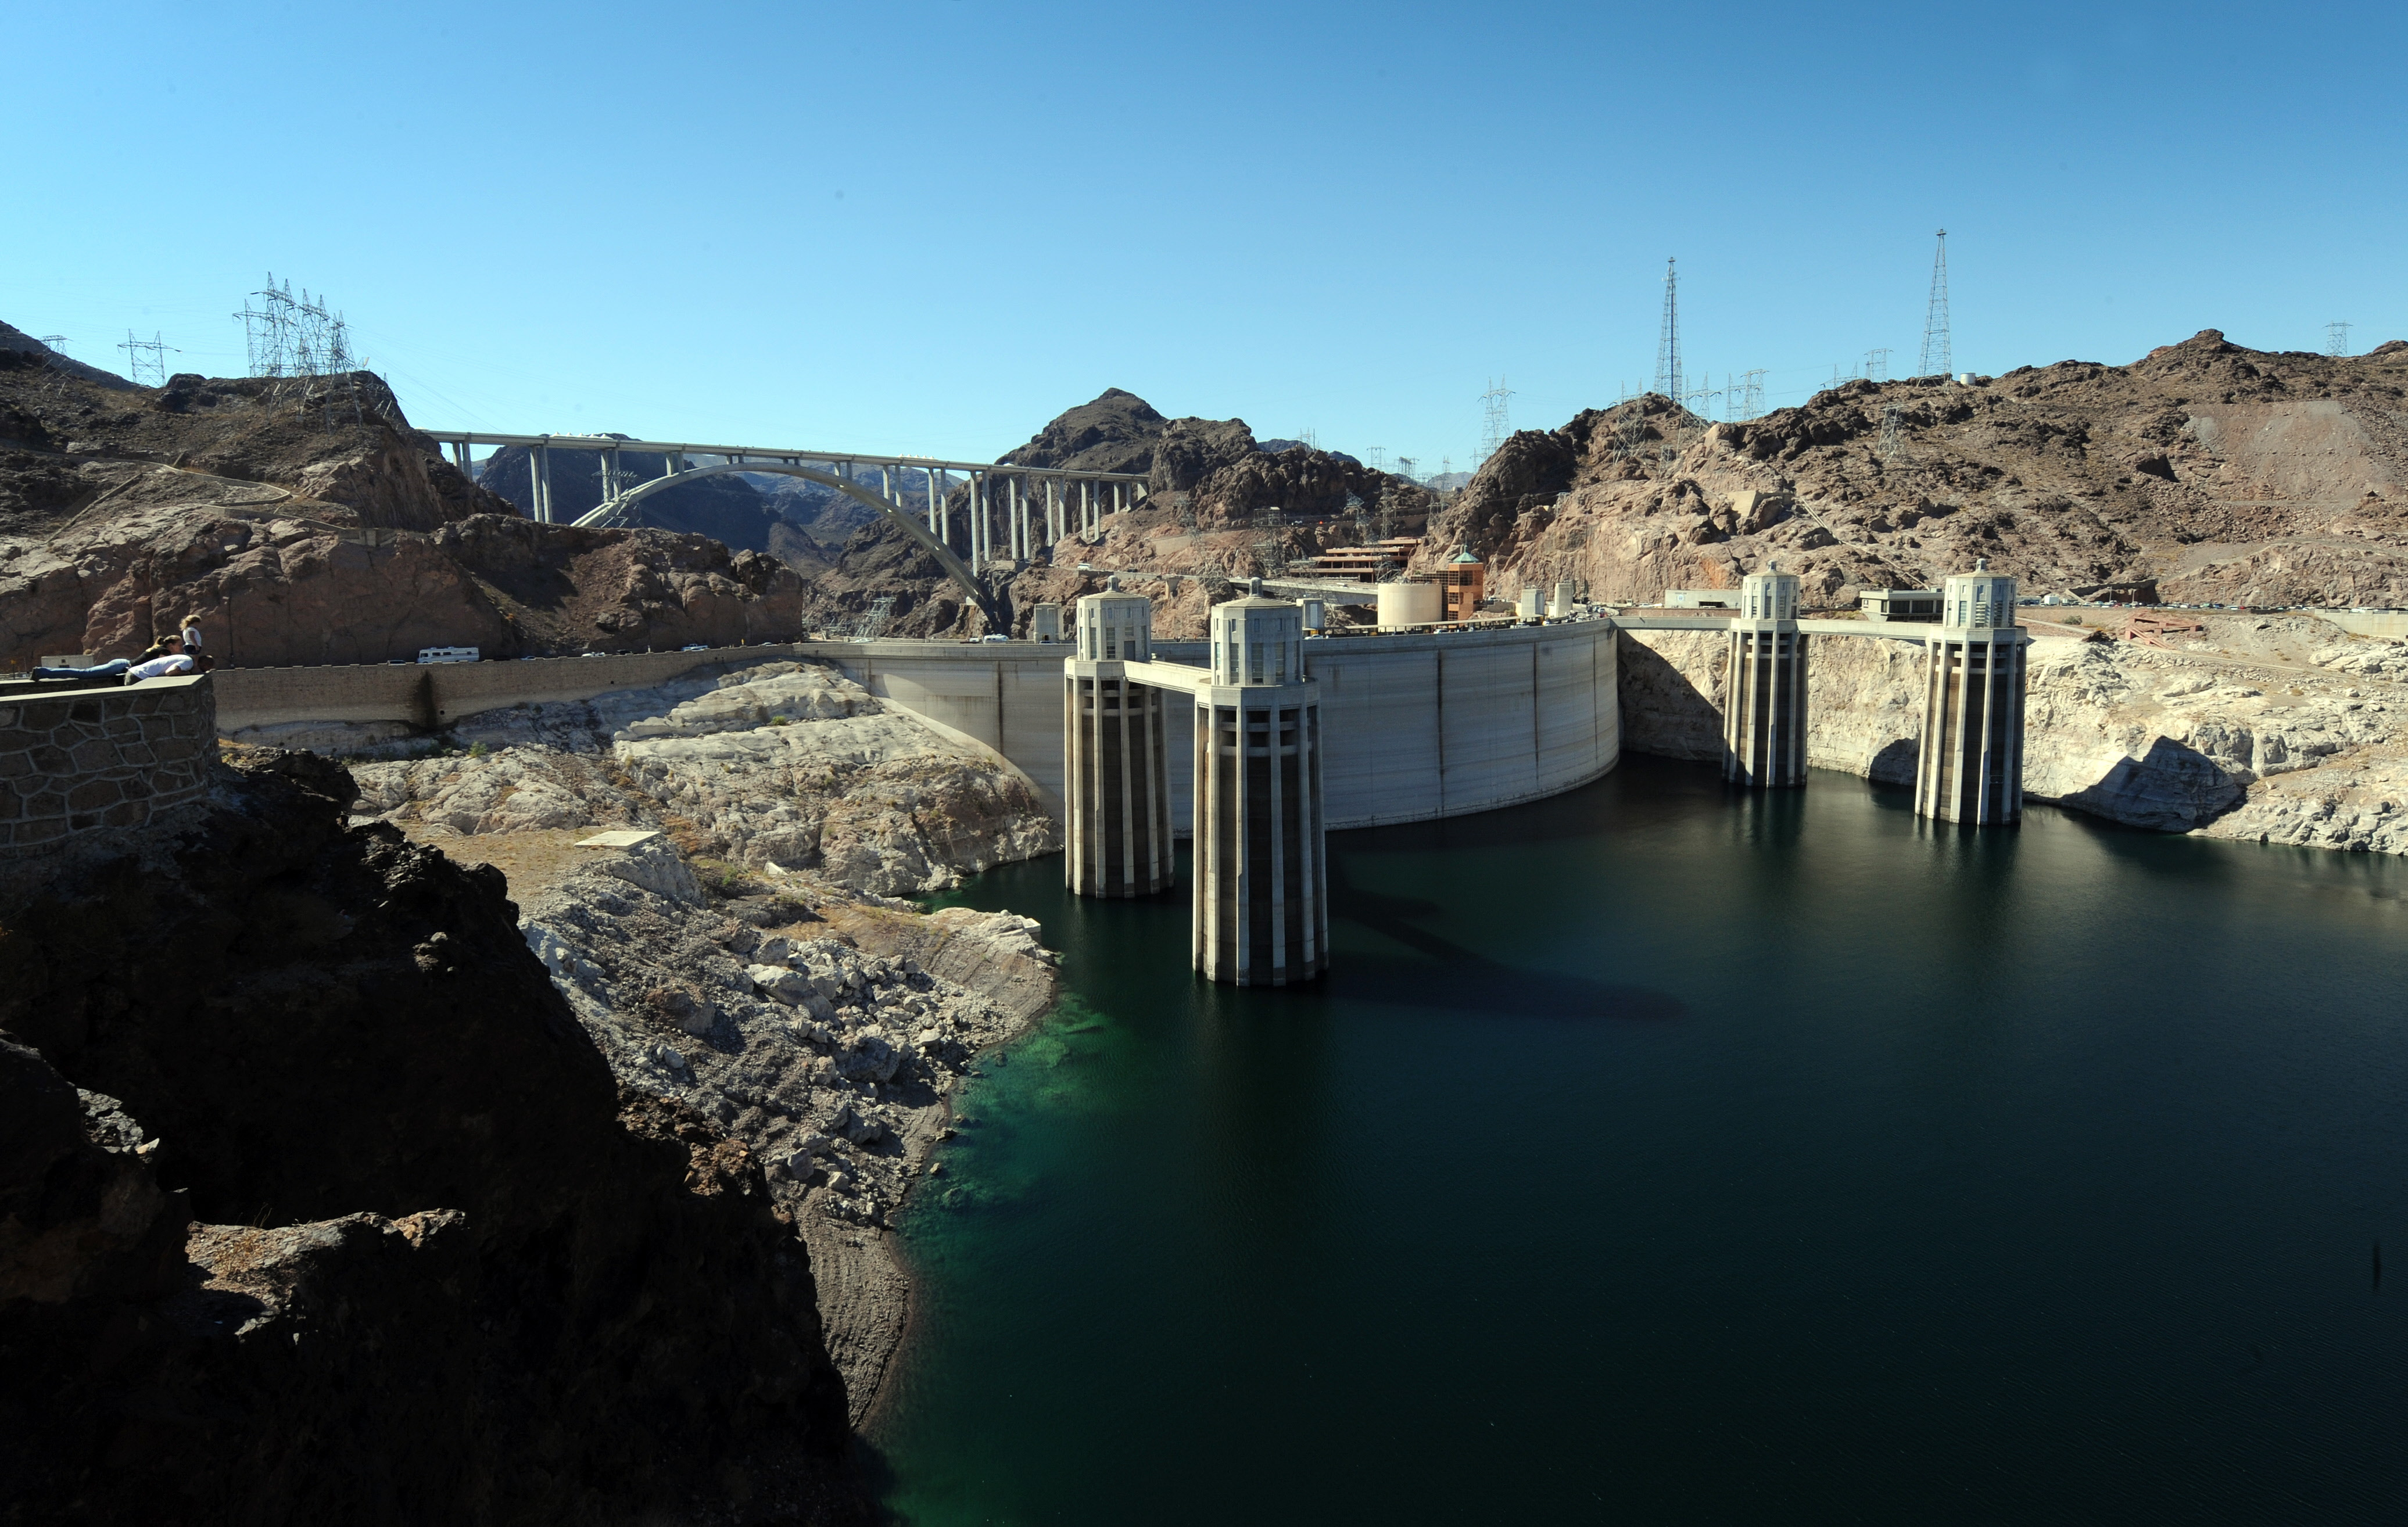 What the Hoover Dam shows about hardening critical infrastructure